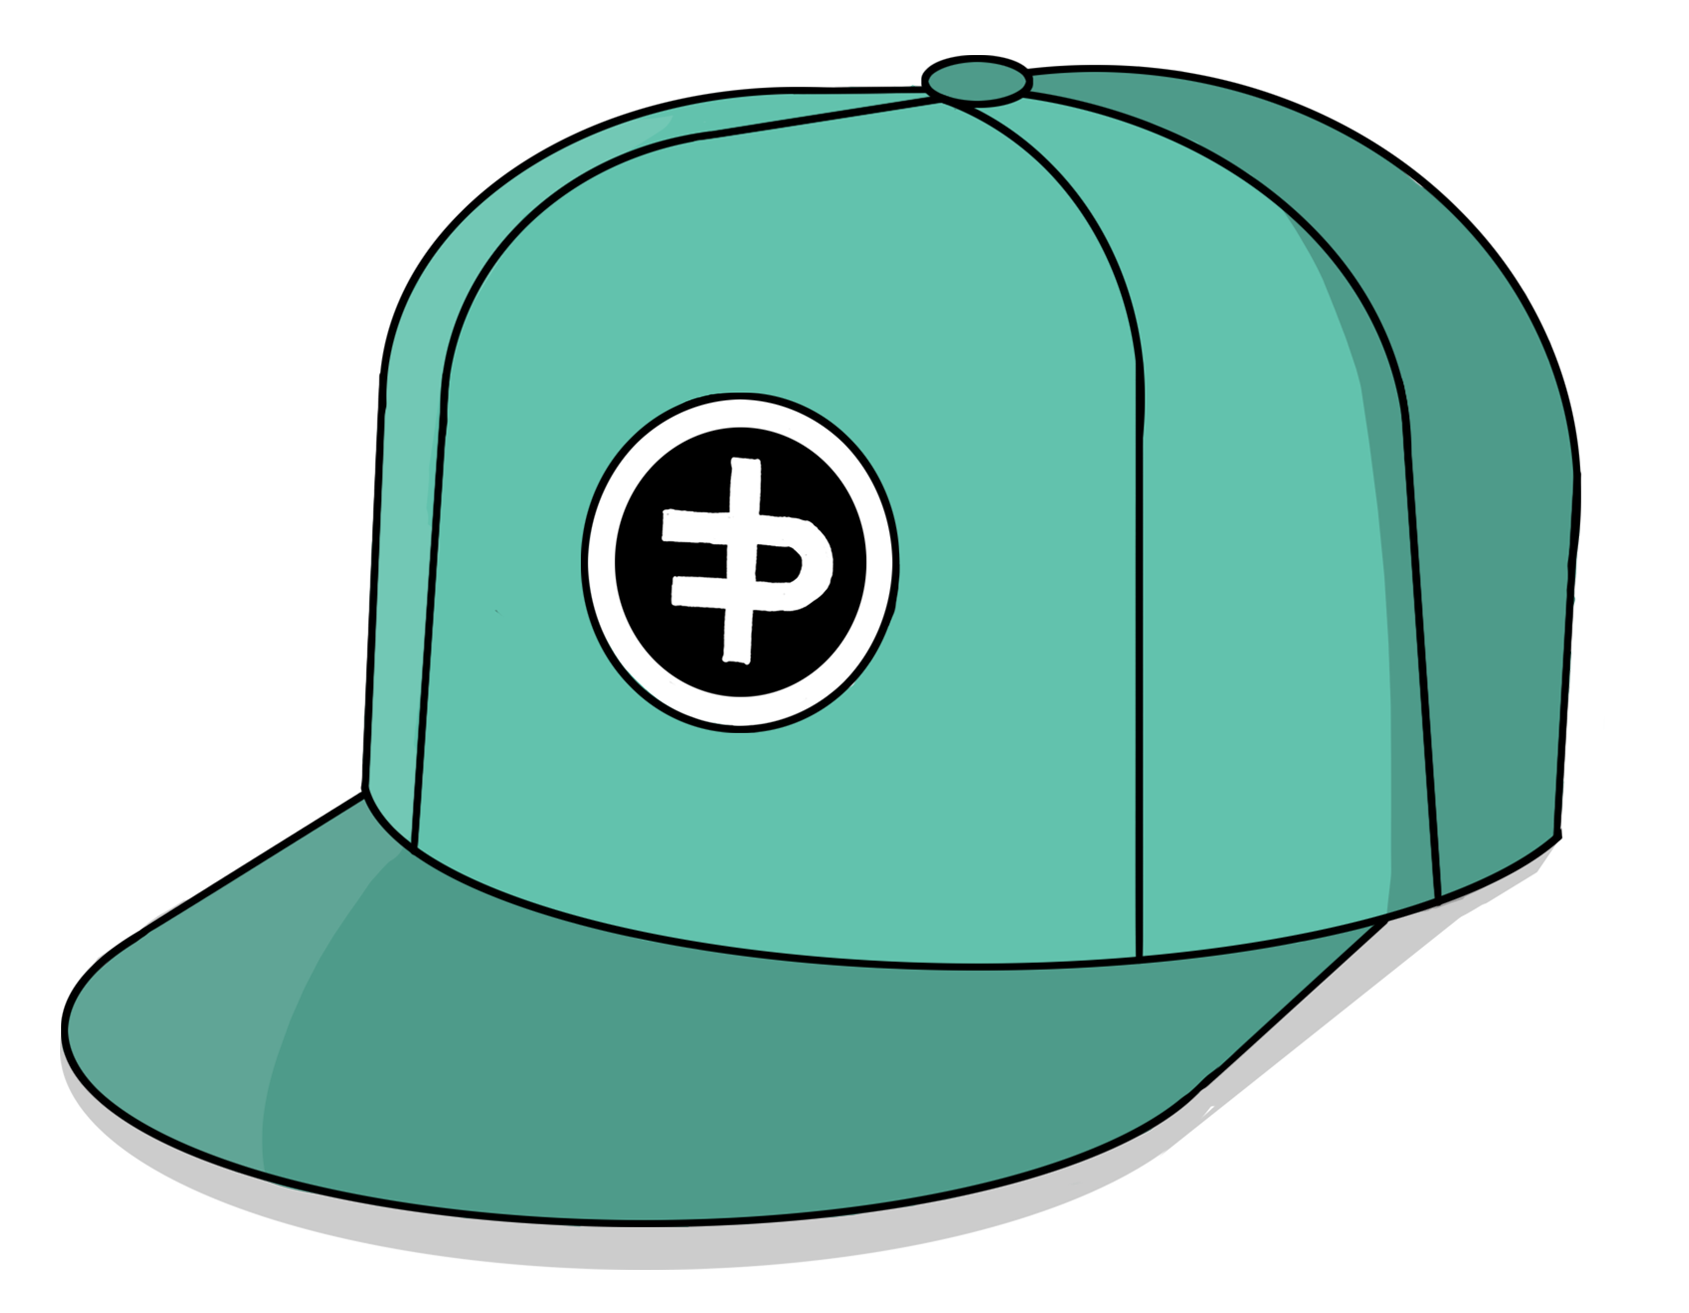 Flux Pavillion Hat Illustration